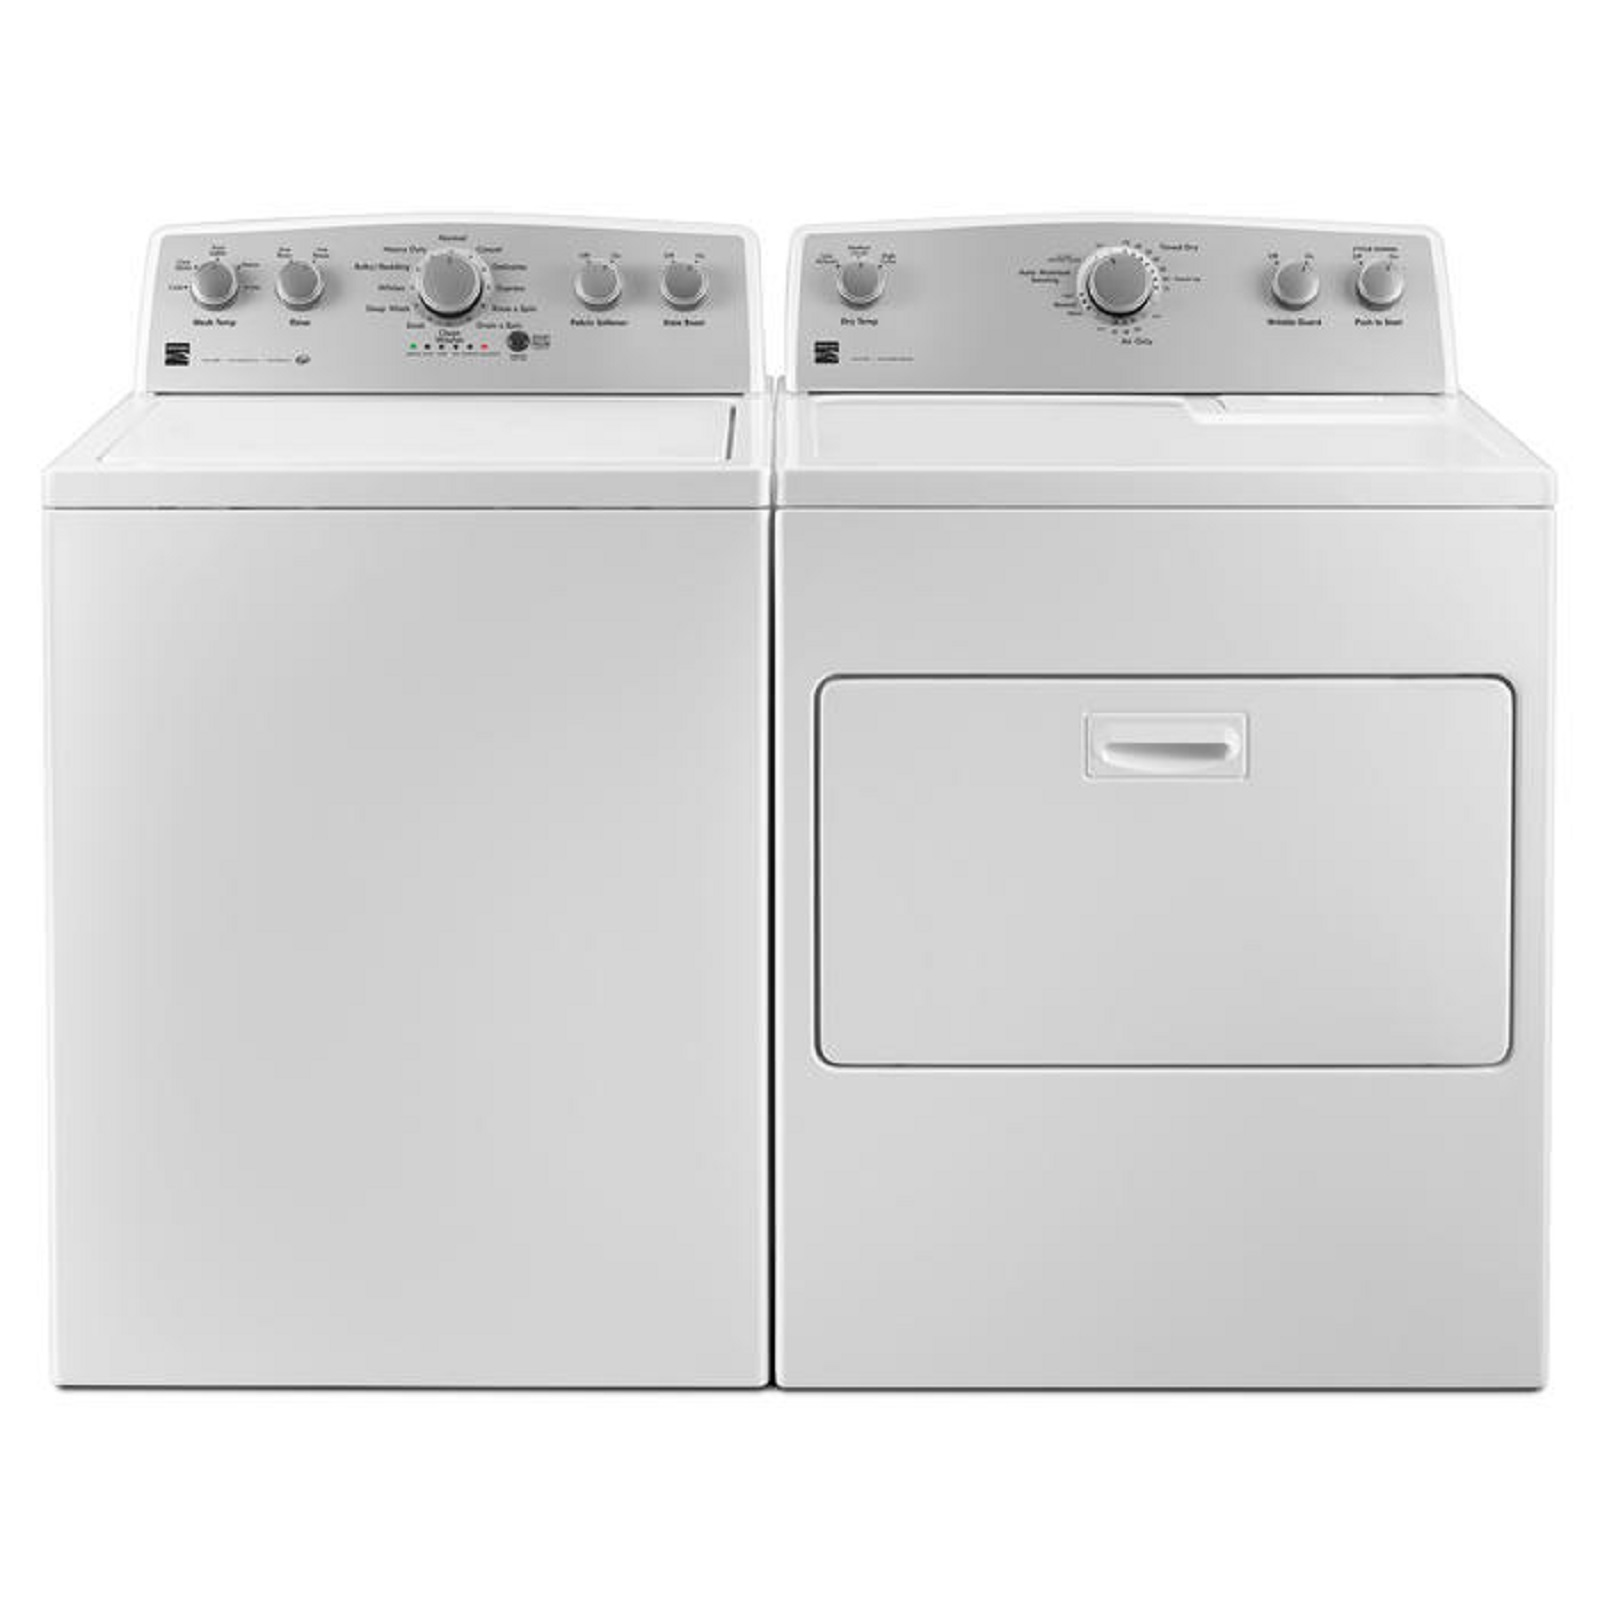 Kenmore 4.3 cu. ft. Top Load Washer &   7.0 cu. ft. Electric Dryer - White